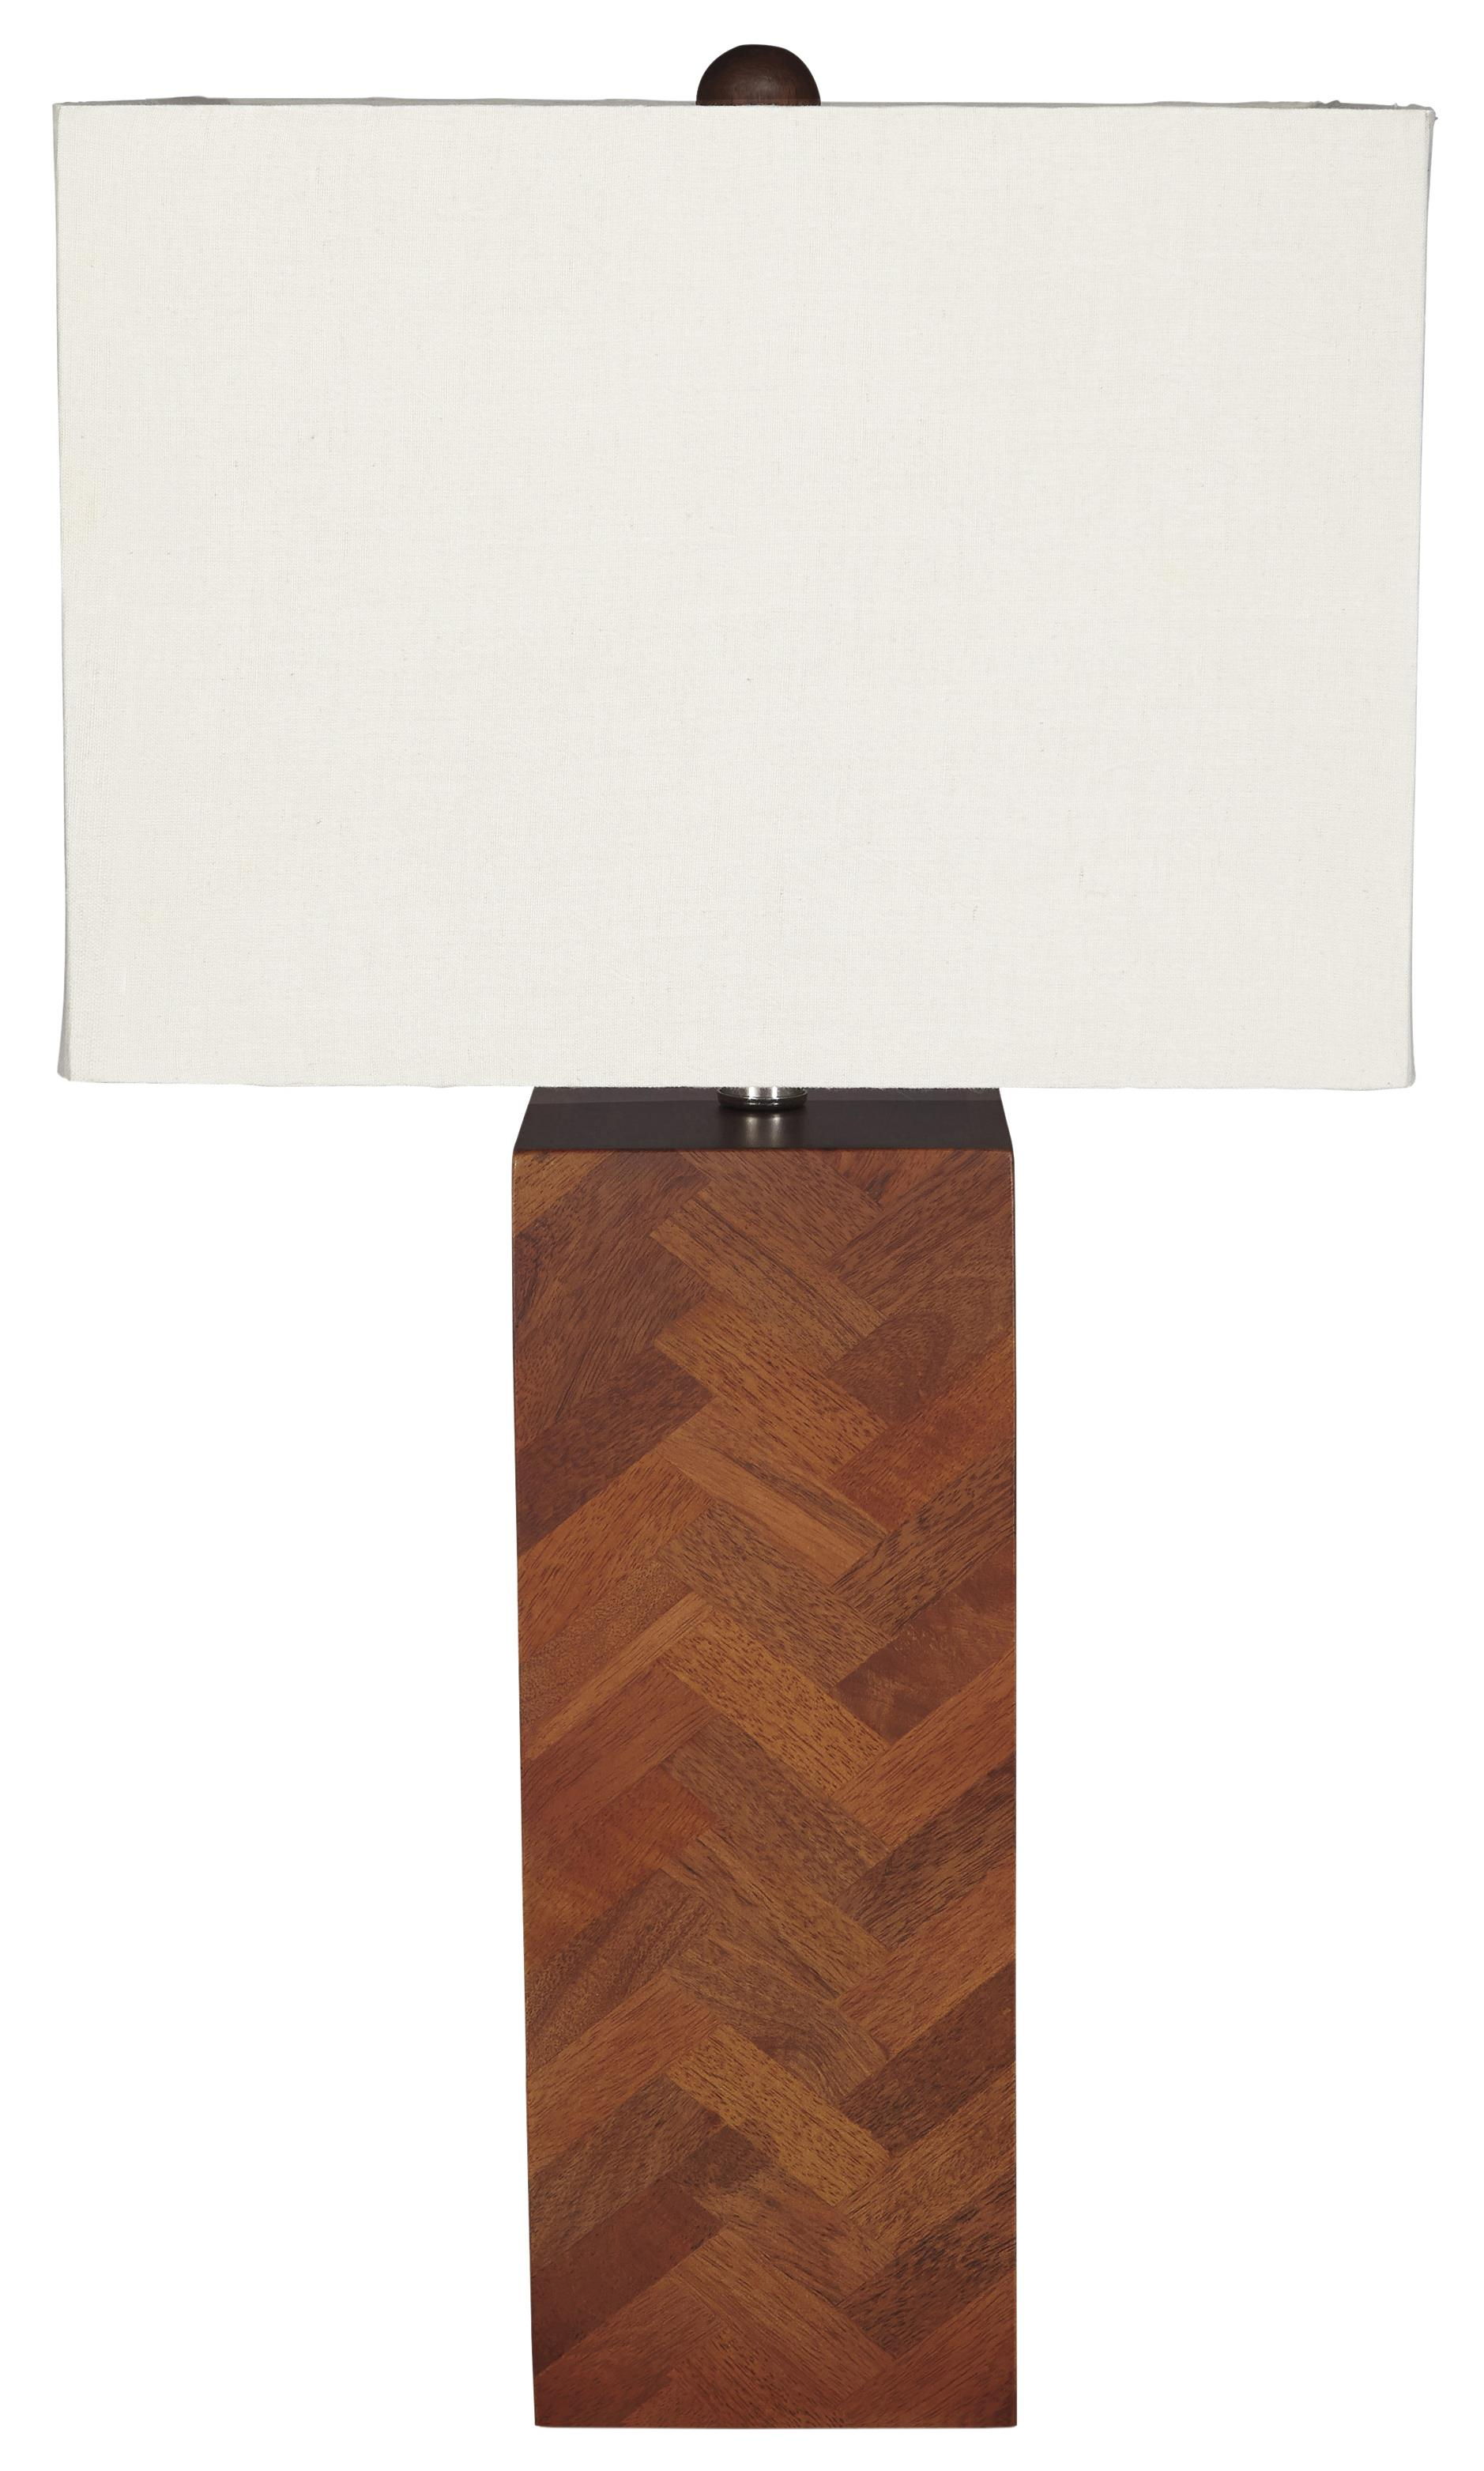 Signature Design by Ashley Lamps - Contemporary Tabeal Wood Table Lamp - Item Number: L327184